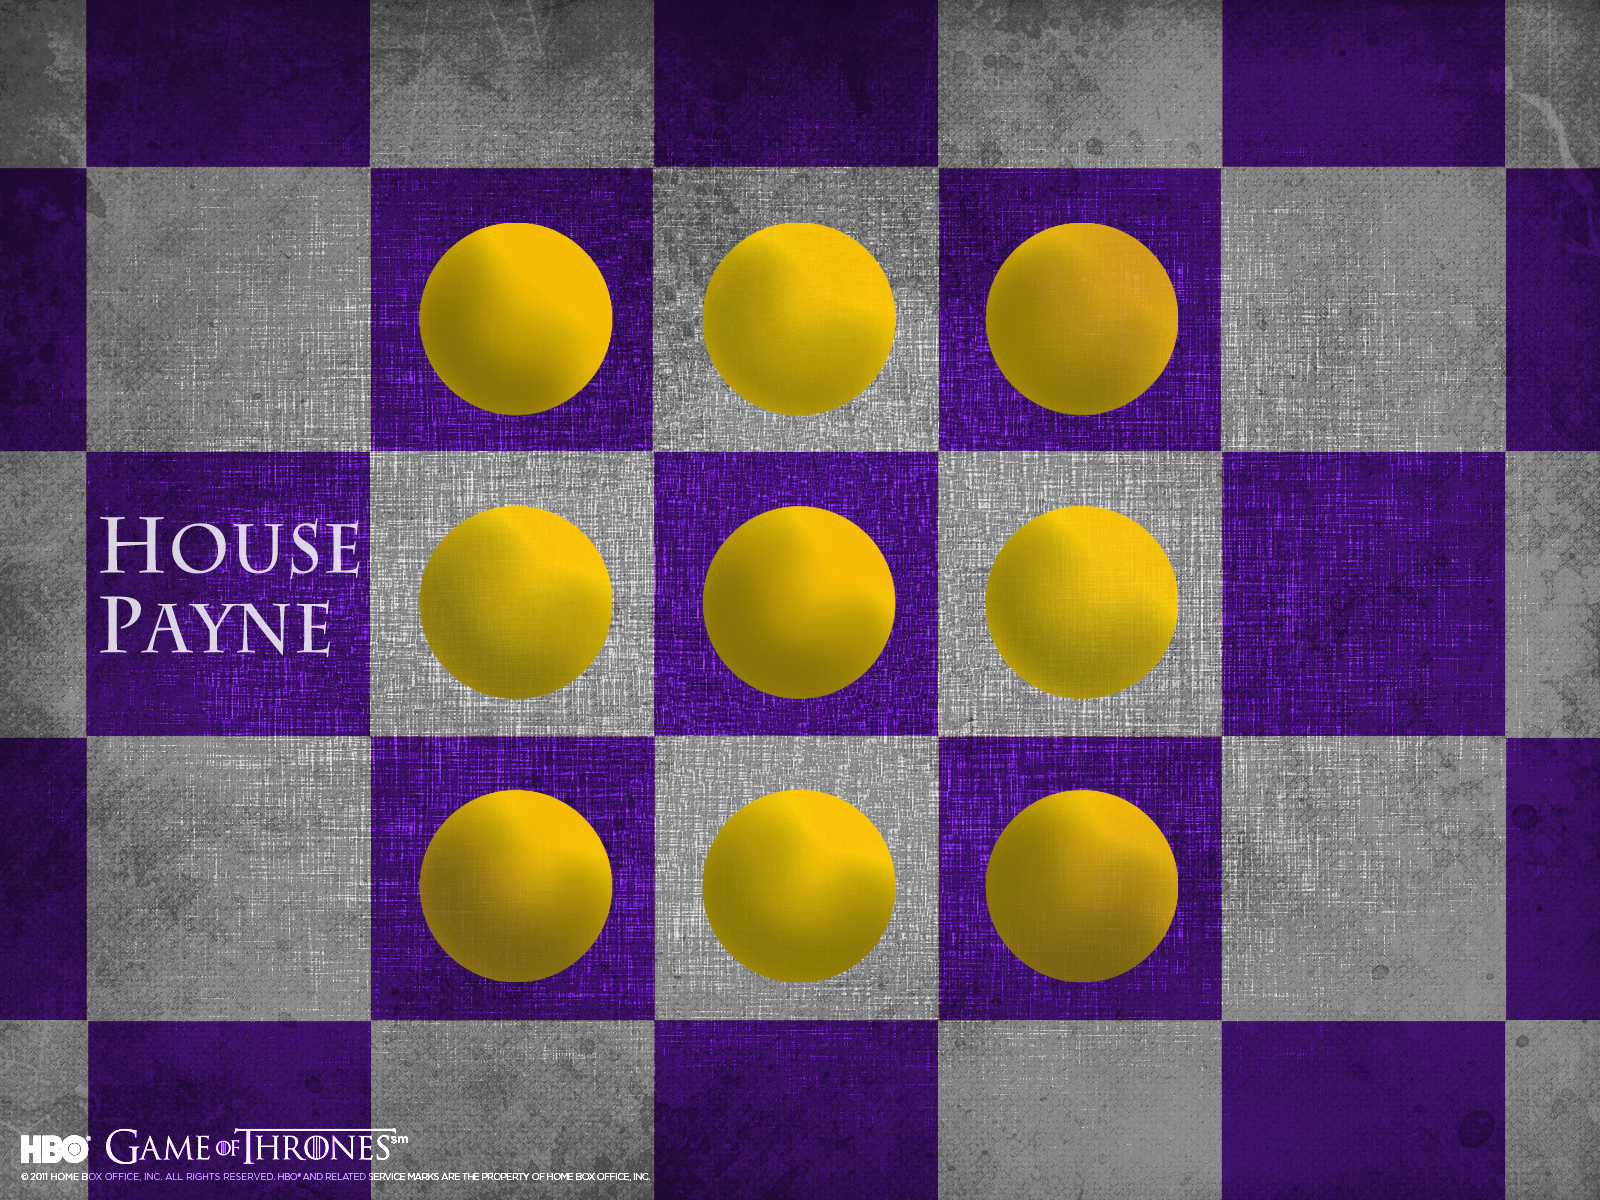 Game of Thrones Wallpaper Houses Game of Thrones House Payne